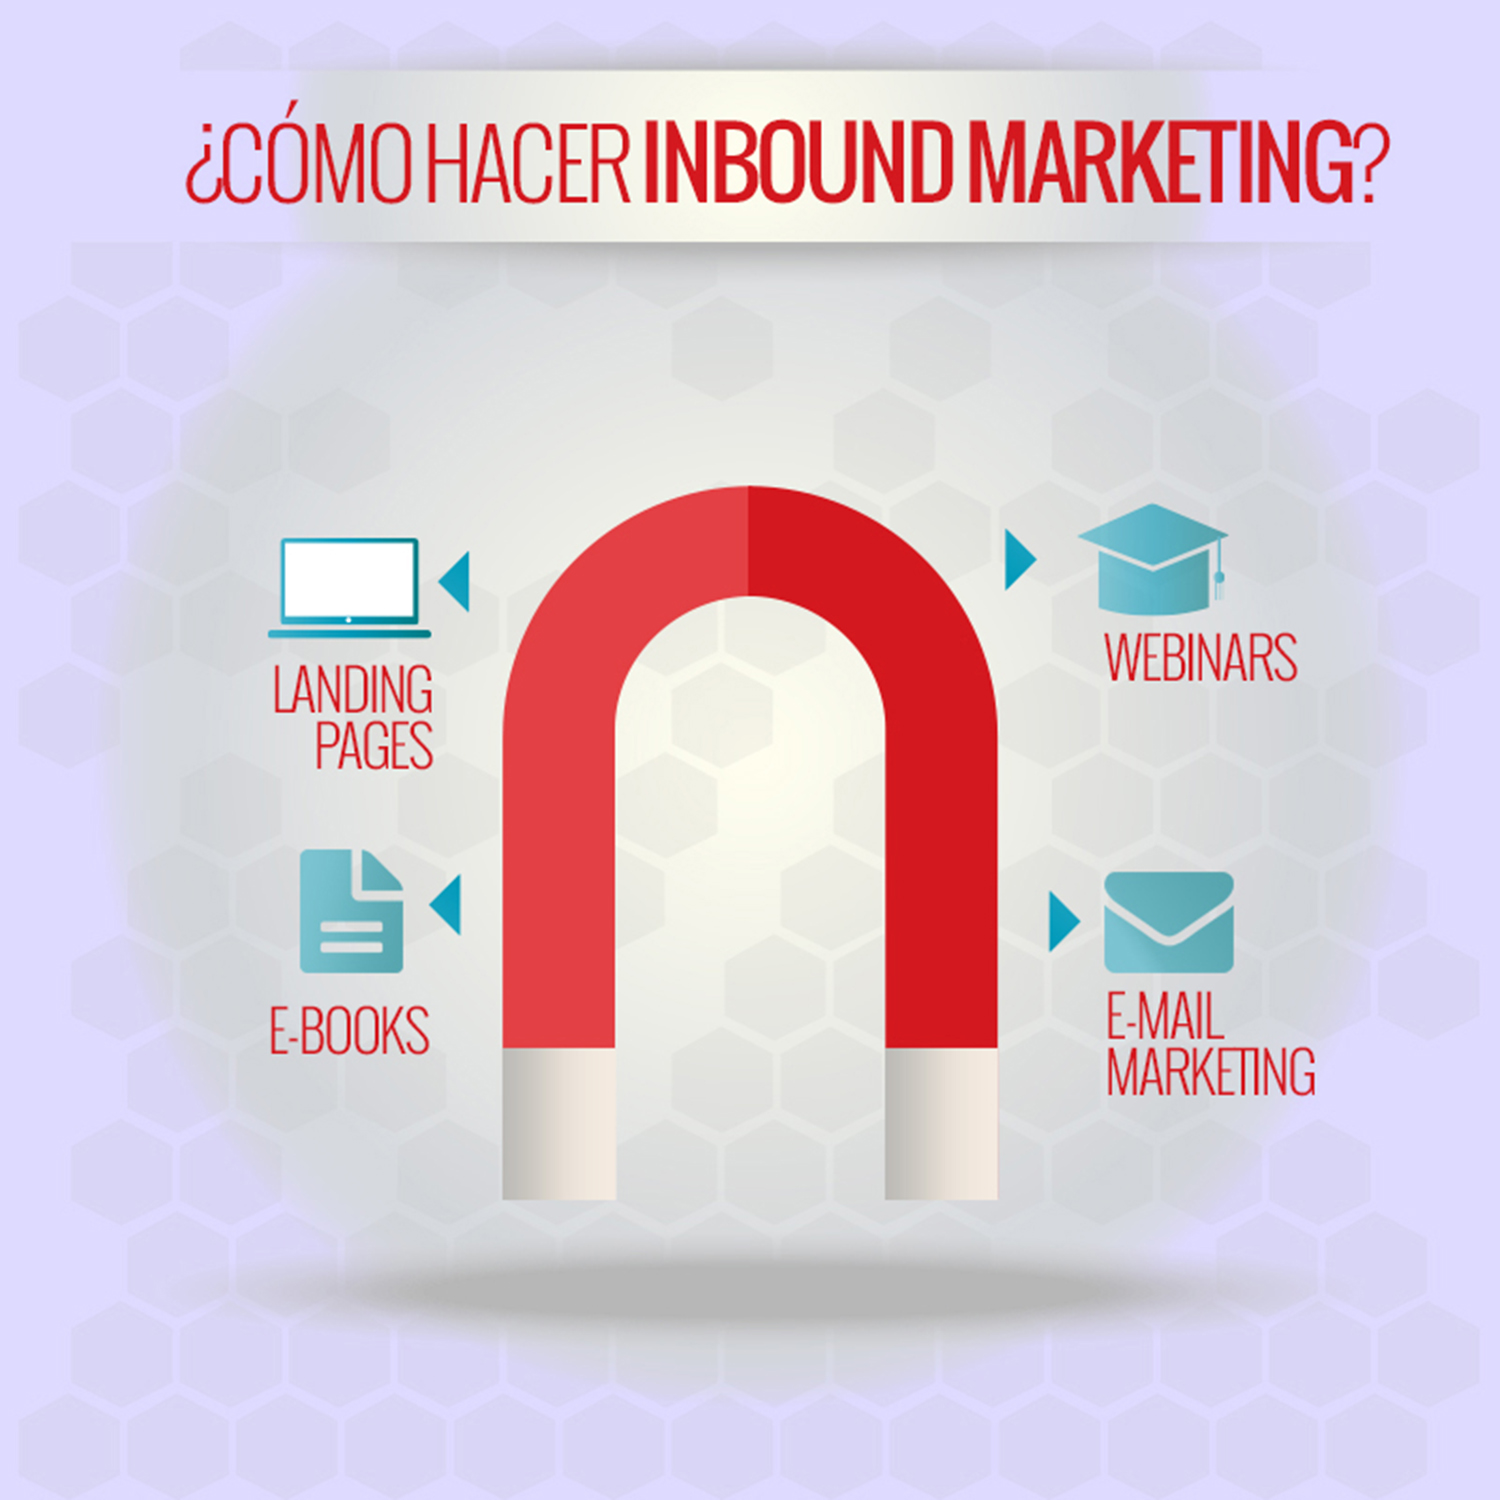 COMO HACER INBOUND MARKETING